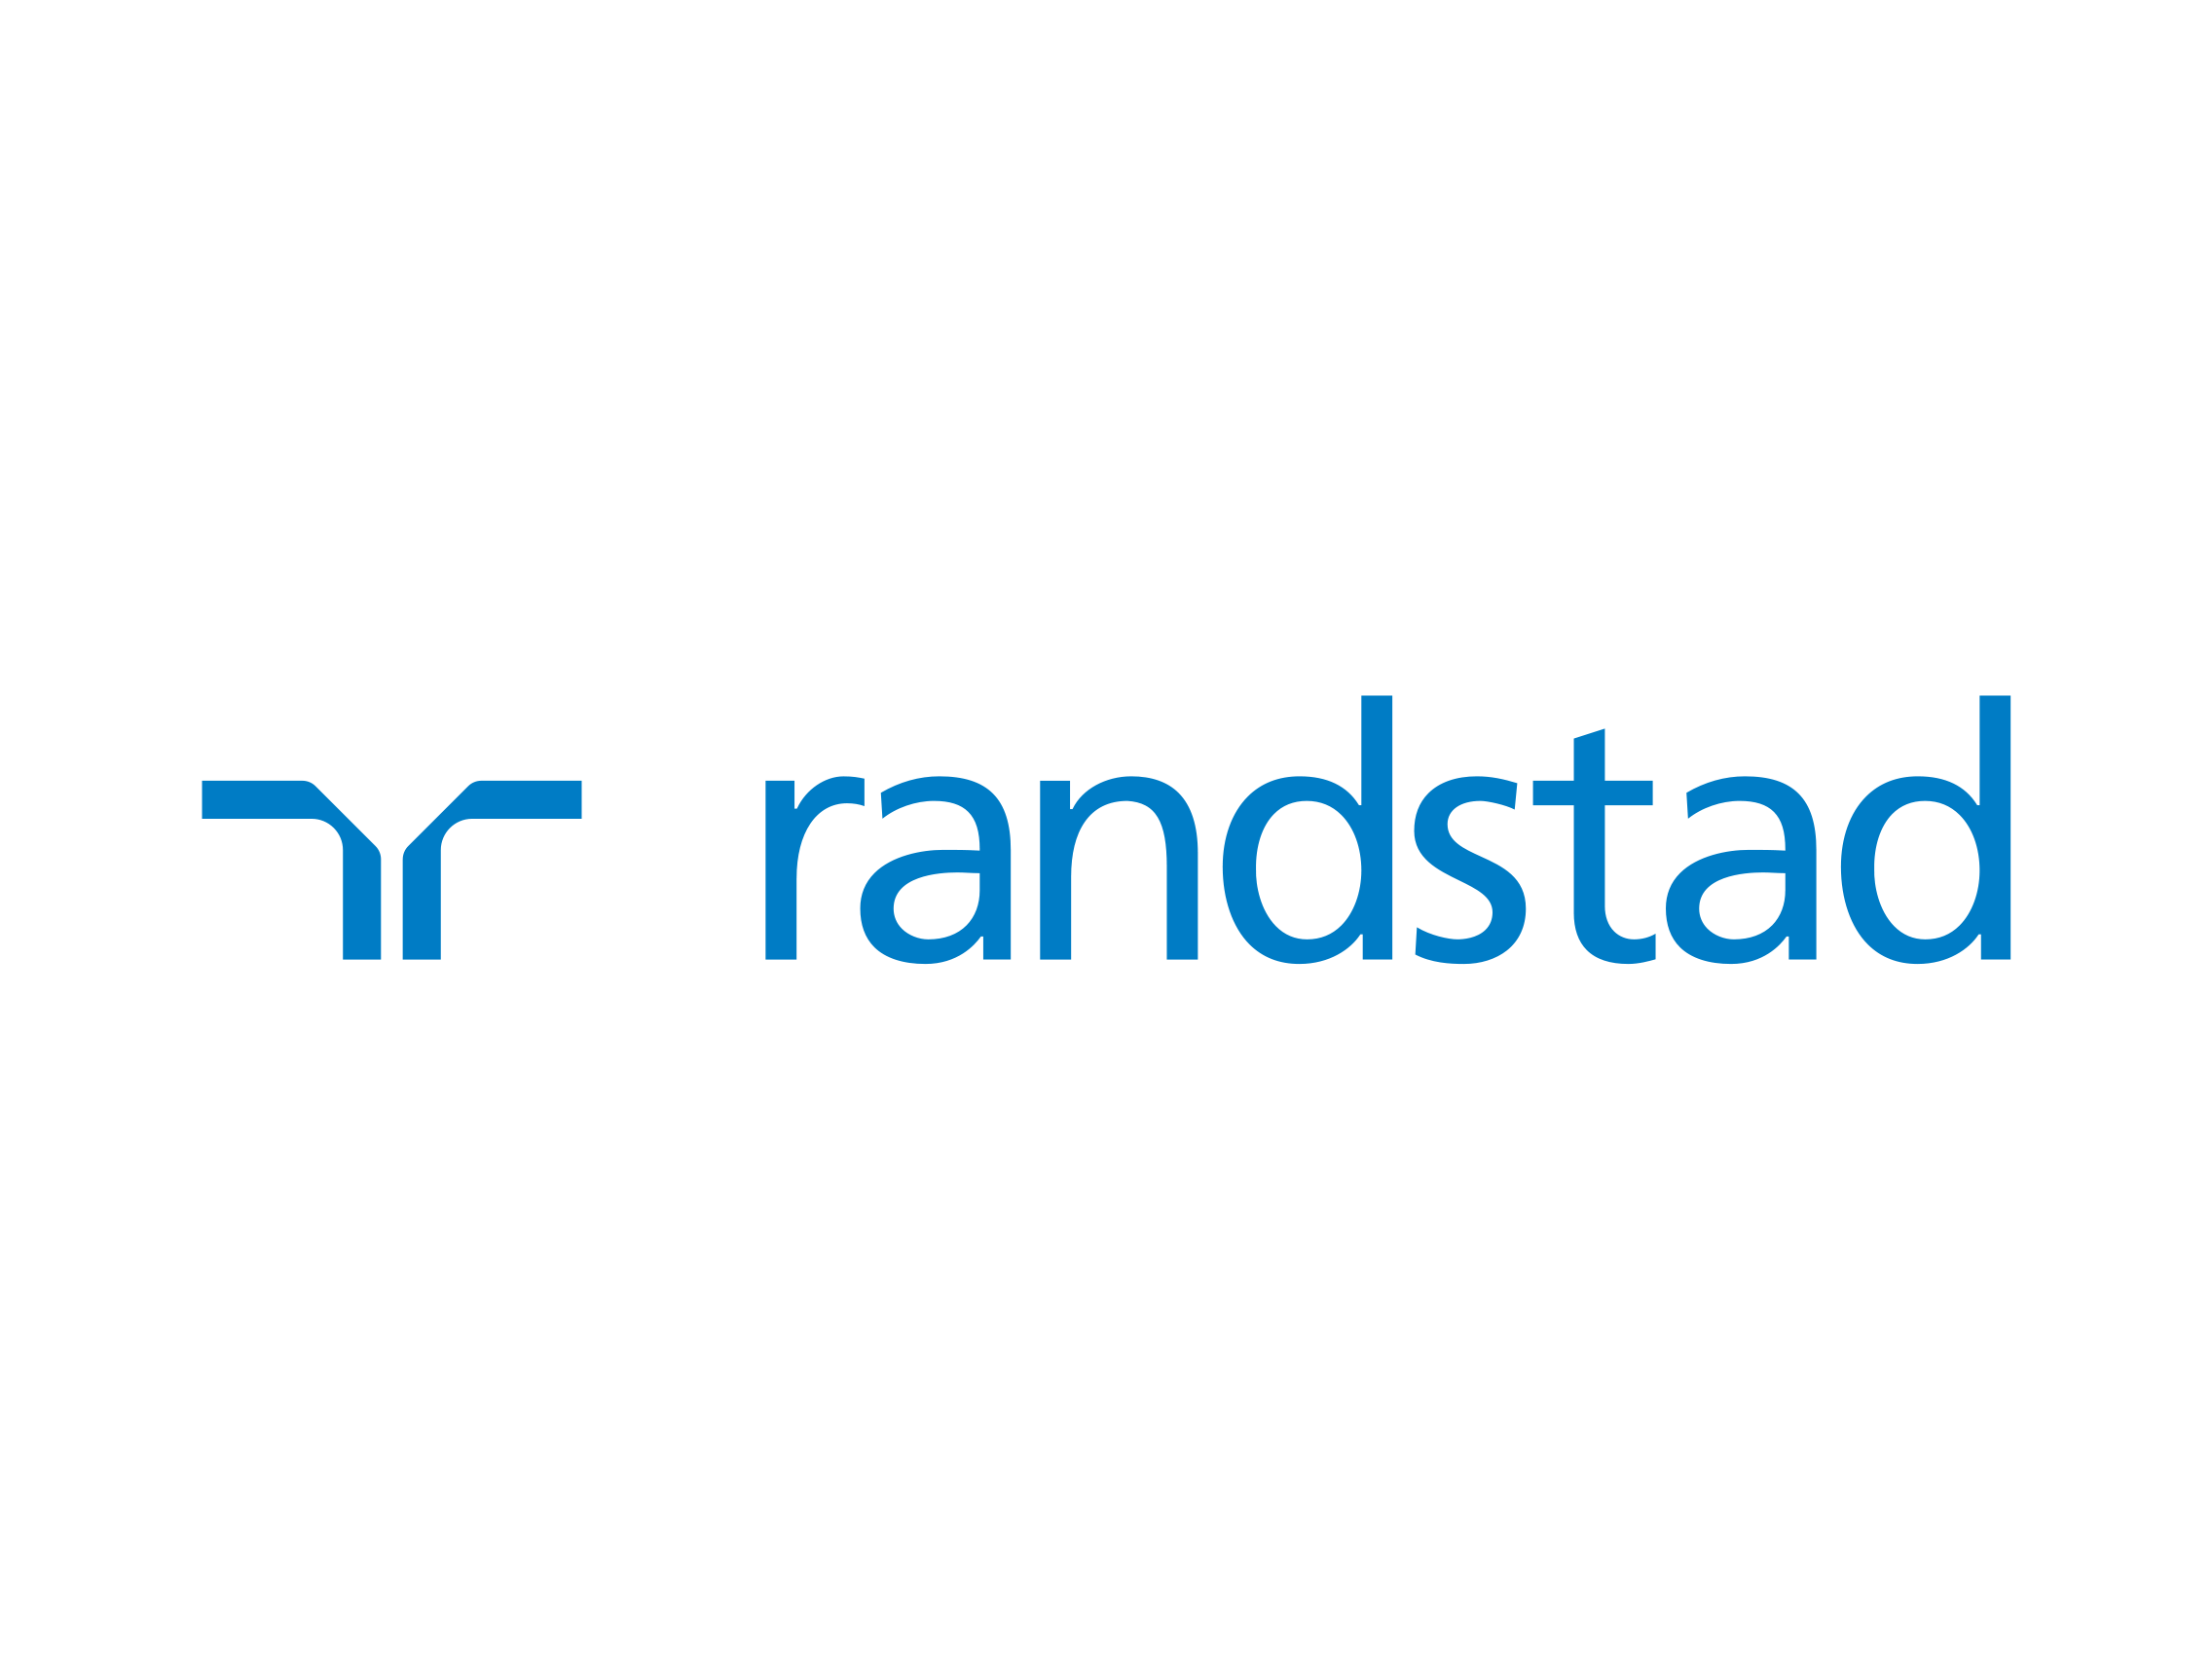 Leading global bank - a client of Randstad Financi